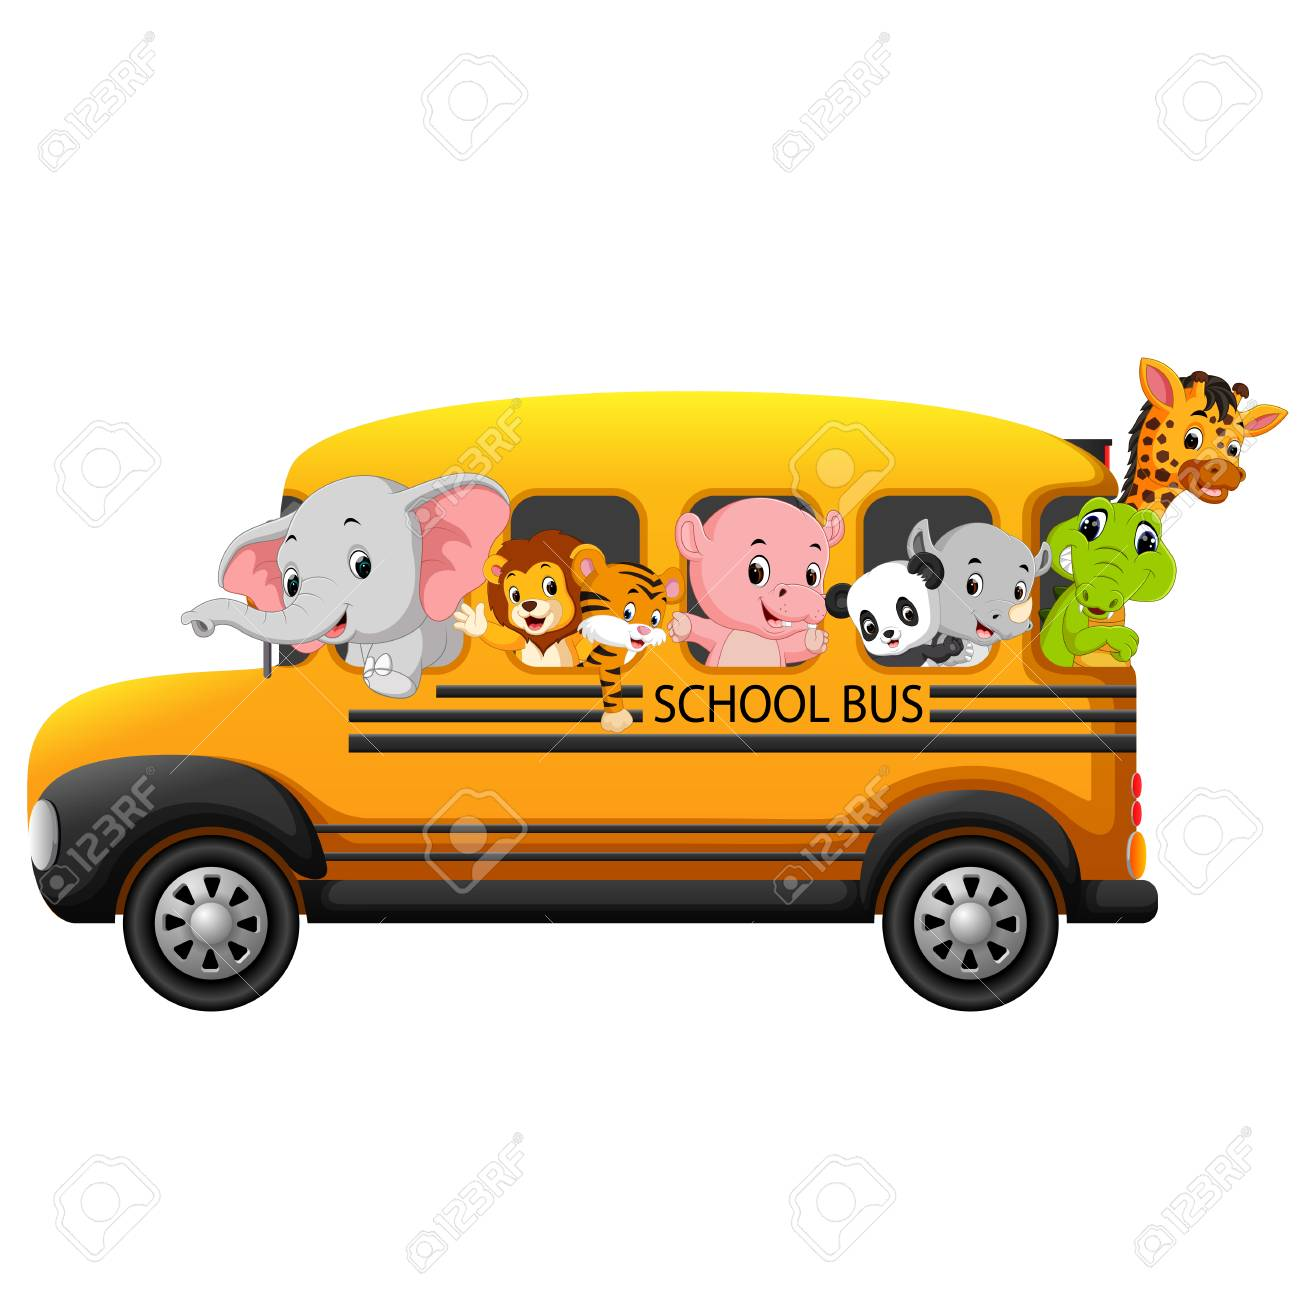 Illustration of school bus filled with animals. - 98367856